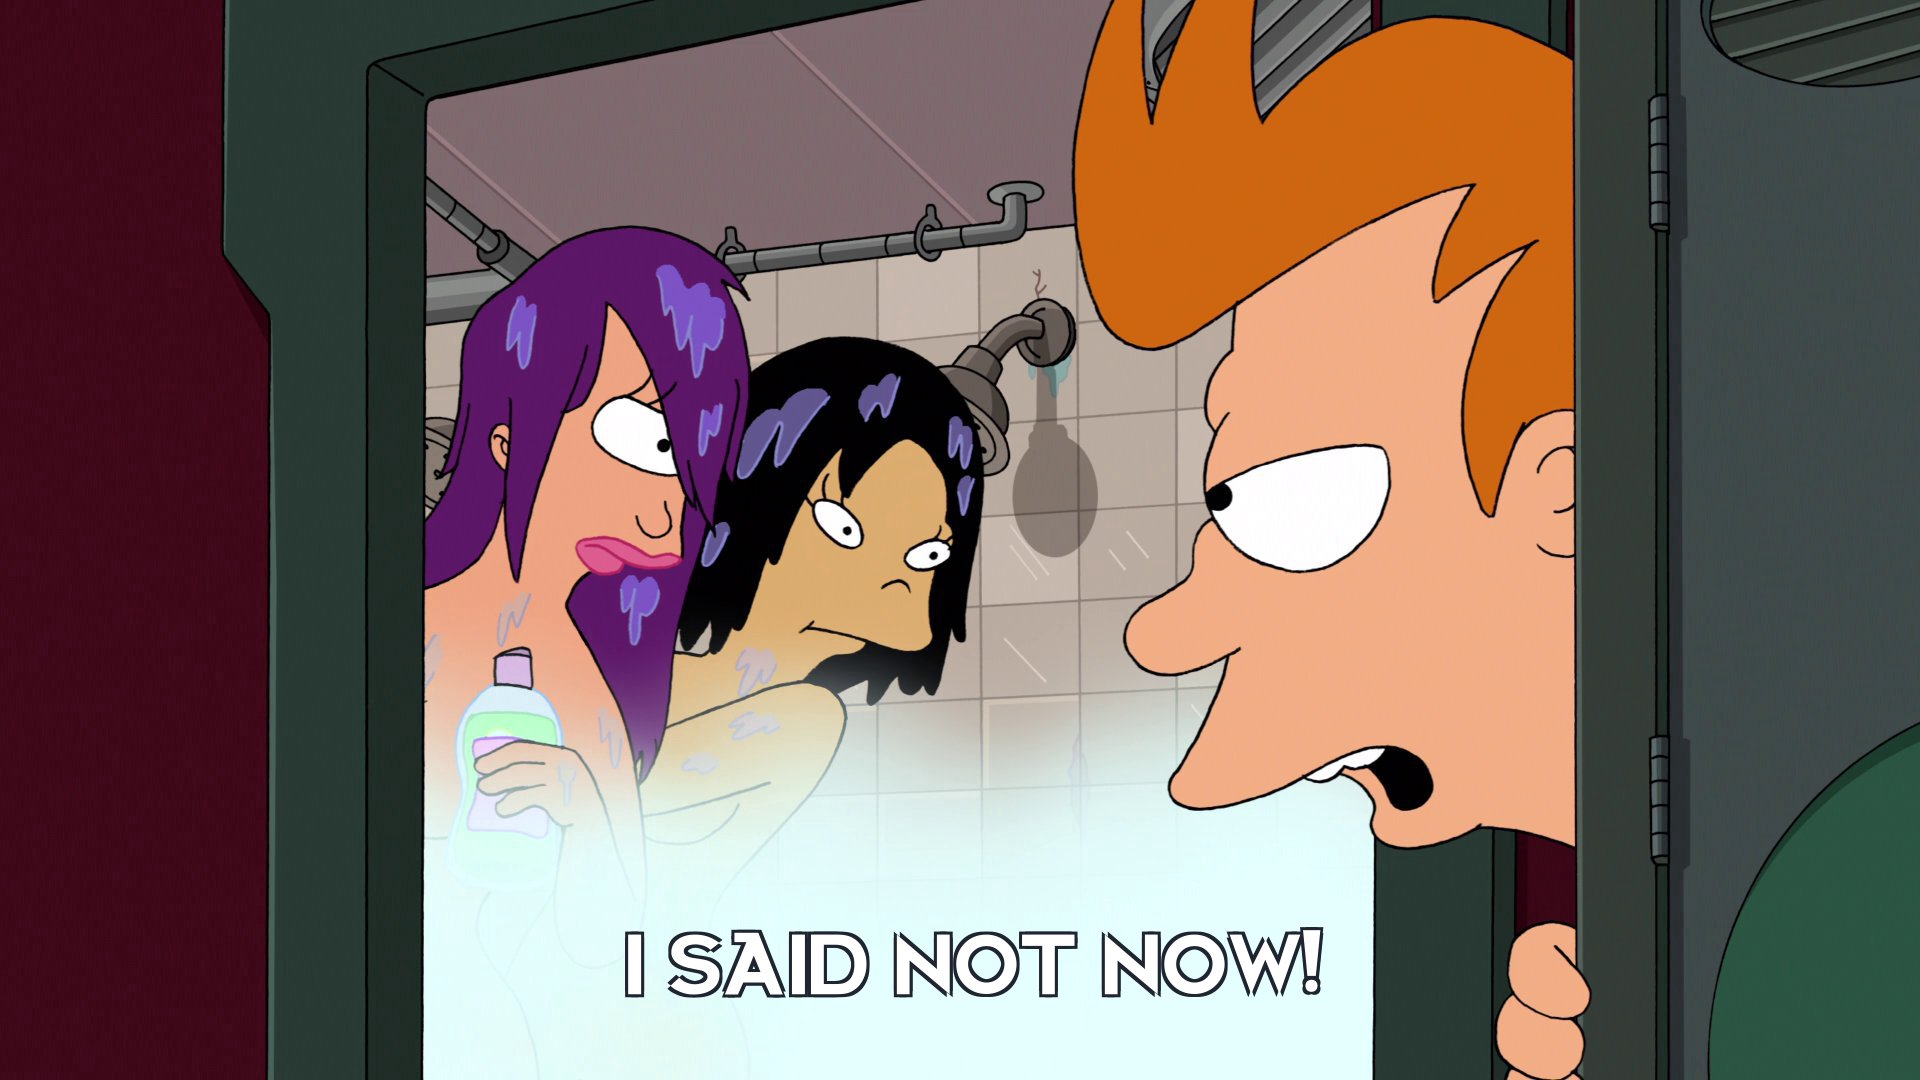 Philip J Fry: I said not now!